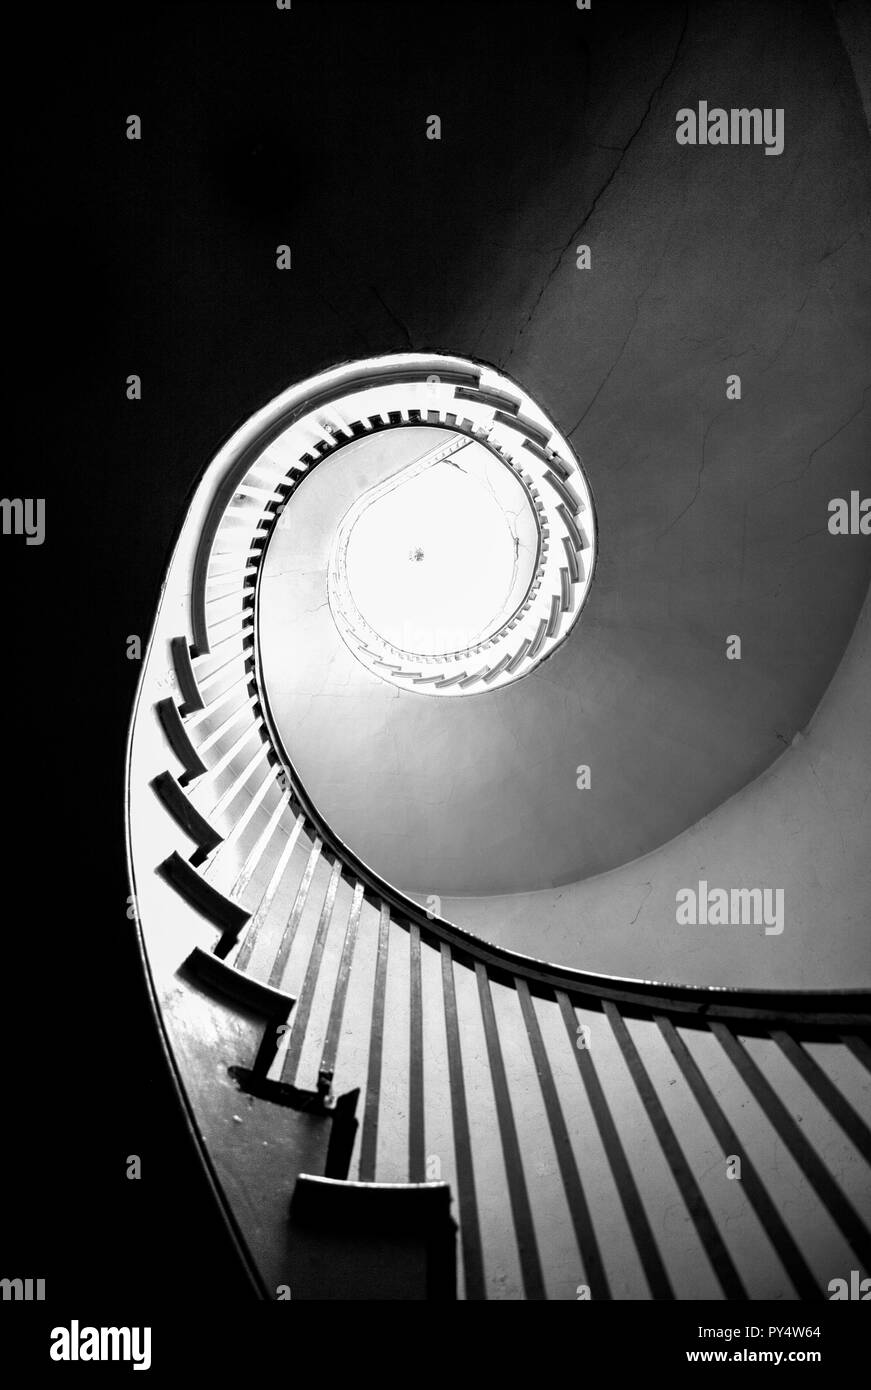 Spiral staircase, Spiral stairs, wooden spiral staircase, spiral stair case, Spiral stairs staircase, abstract, black and white, winding staircase, Stock Photo